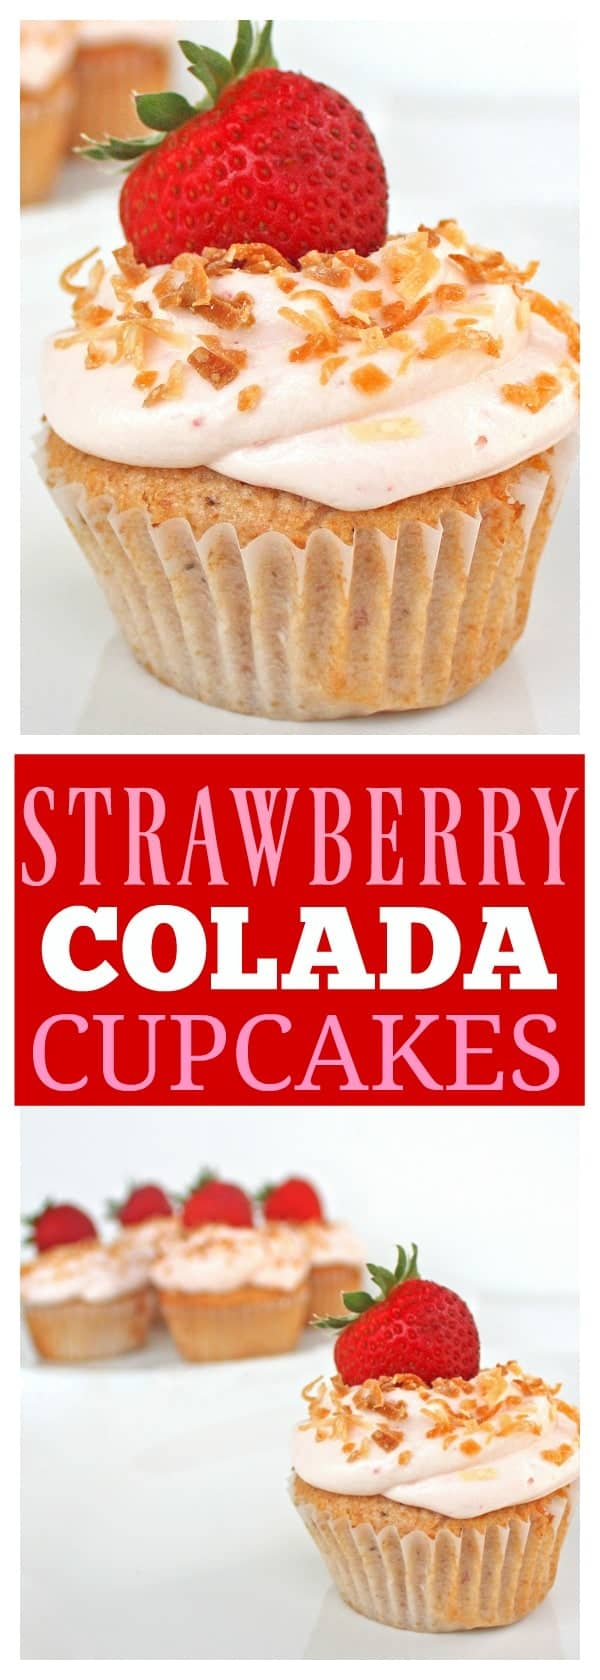 Strawberry Colada Cupcakes - the-girl-who-ate-everything.com